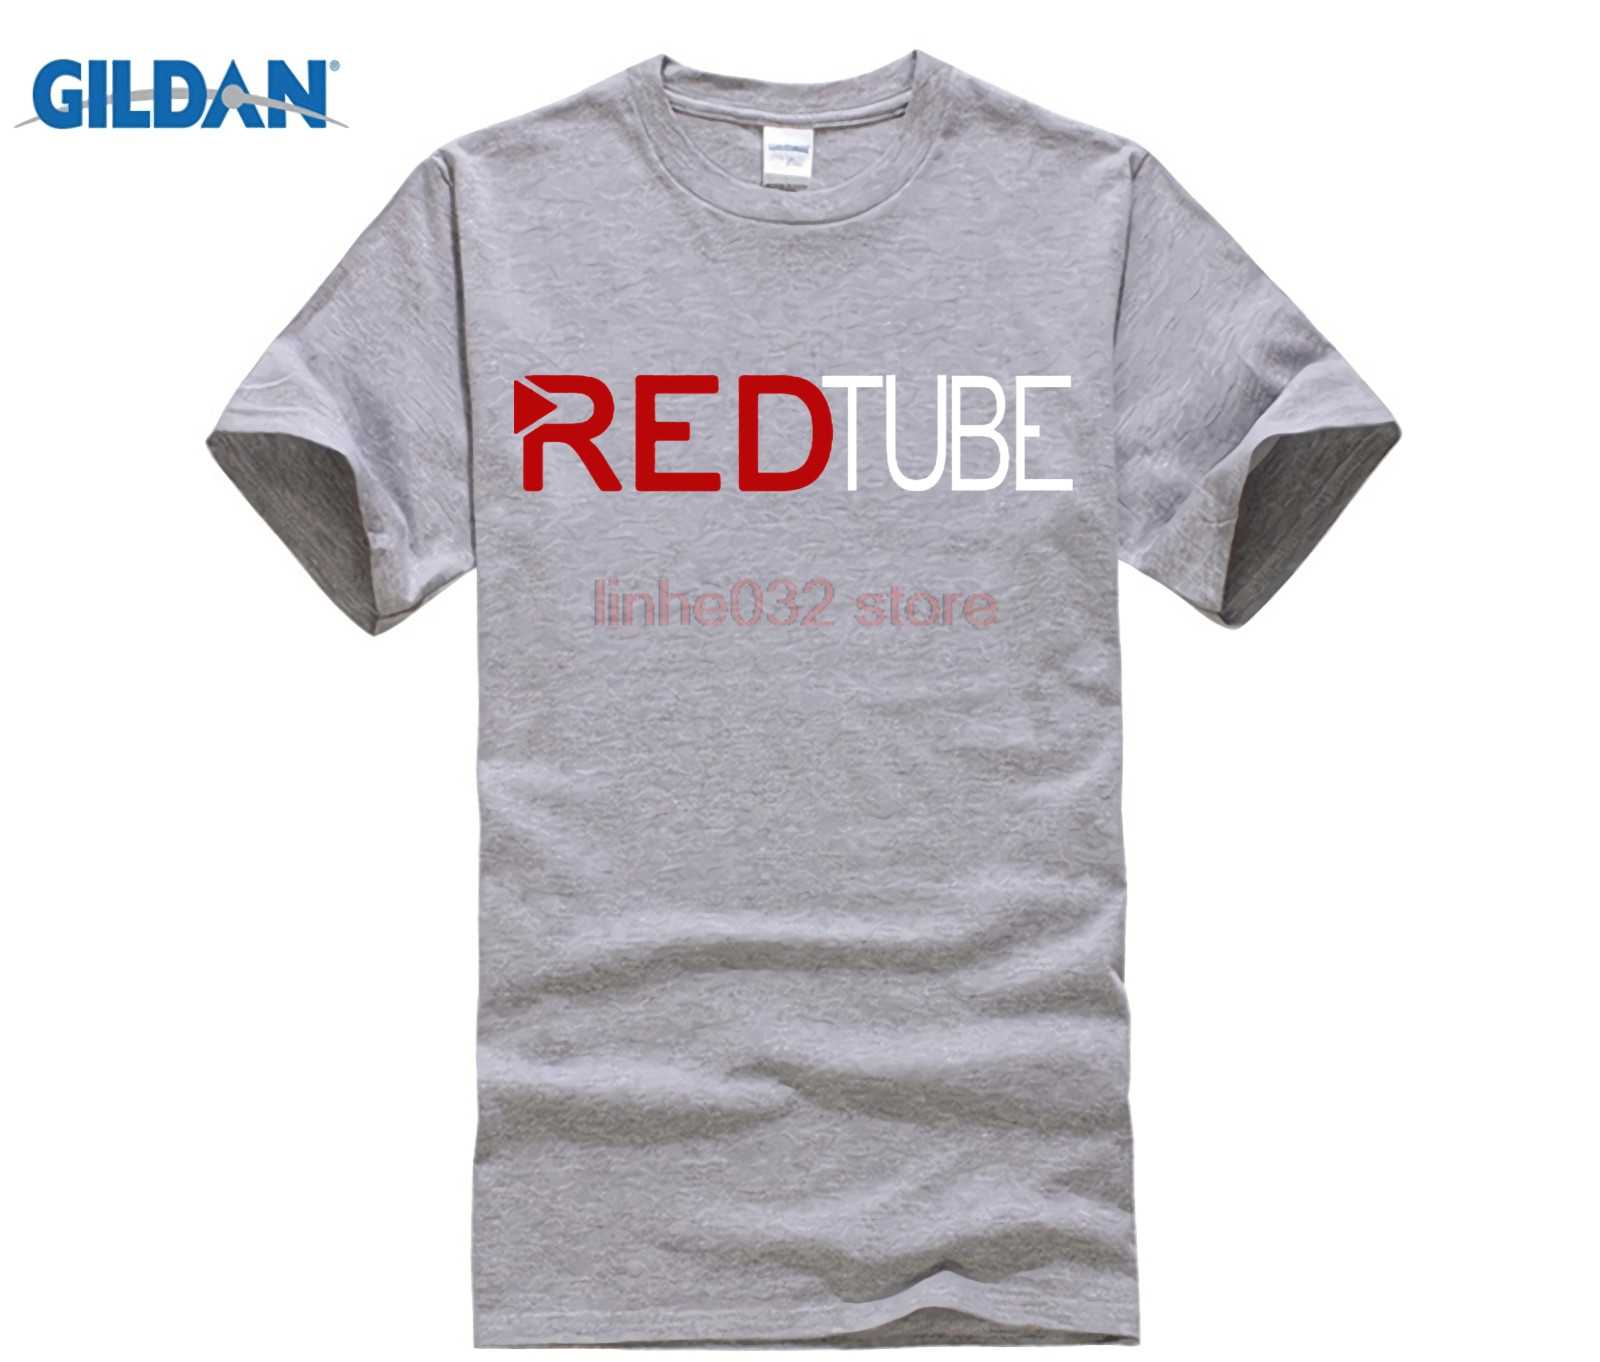 bae26b8f6cc ... 2018 Casual Fashion RedTube Logo Men s T-Shirt Cotton male Tops tee  Shirts hot fashion